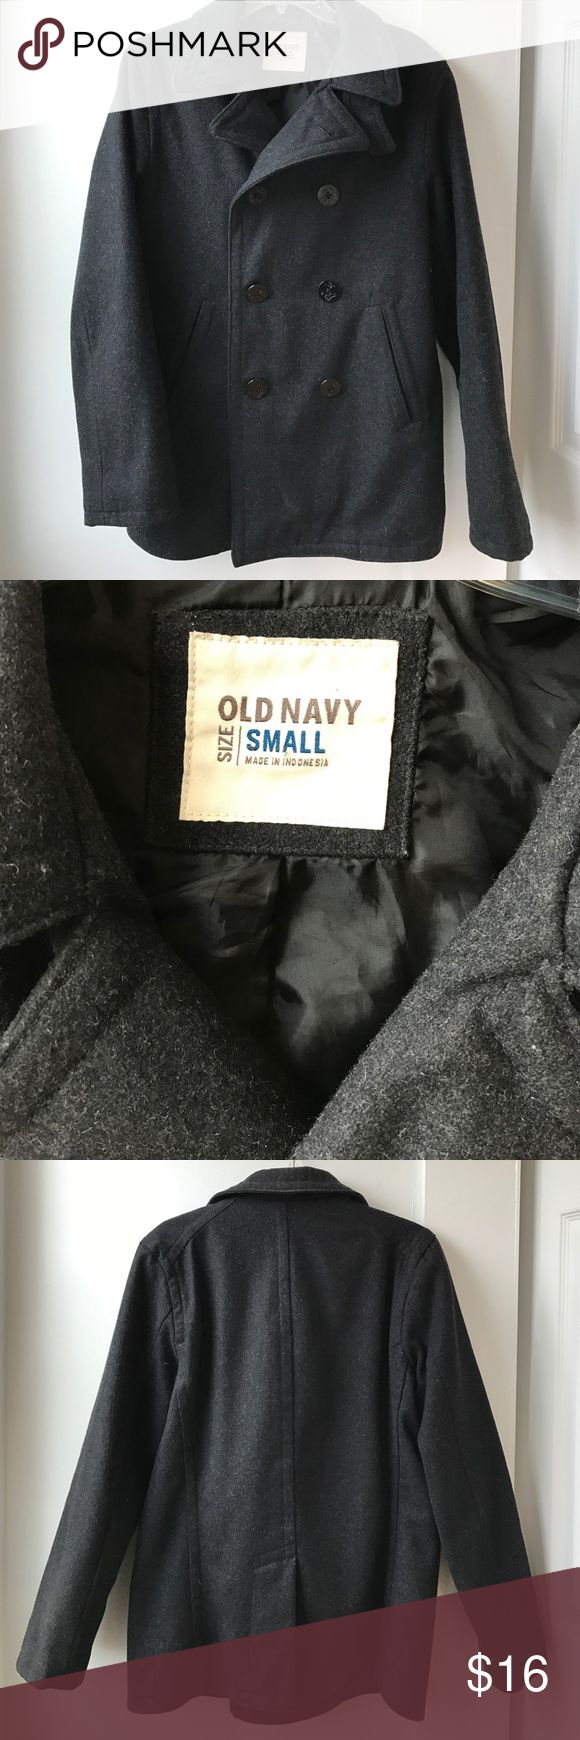 Old Navy men's peacoat Old Navy men's peacoat size small. Has two holes in inside lining, as pictured. Otherwise perfect condition! Old Navy Jackets & Coats Pea Coats